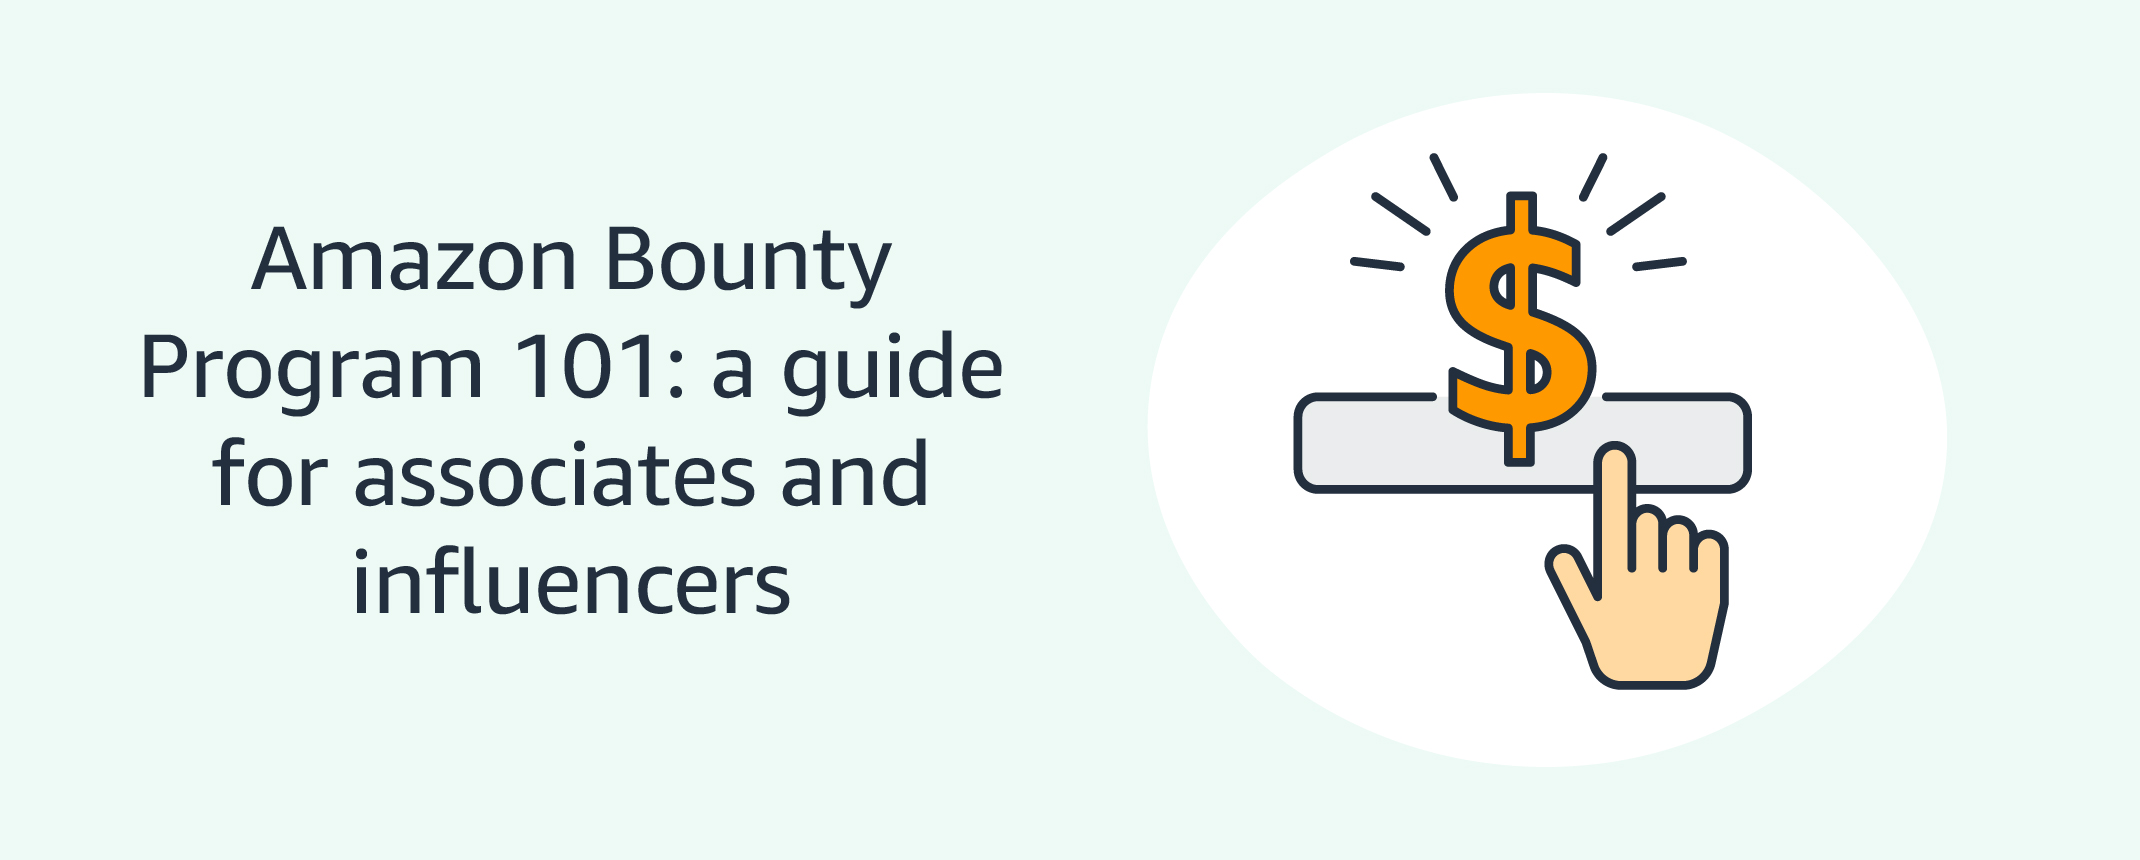 Amazon Bounty Program 101: A guide for associates and influencers